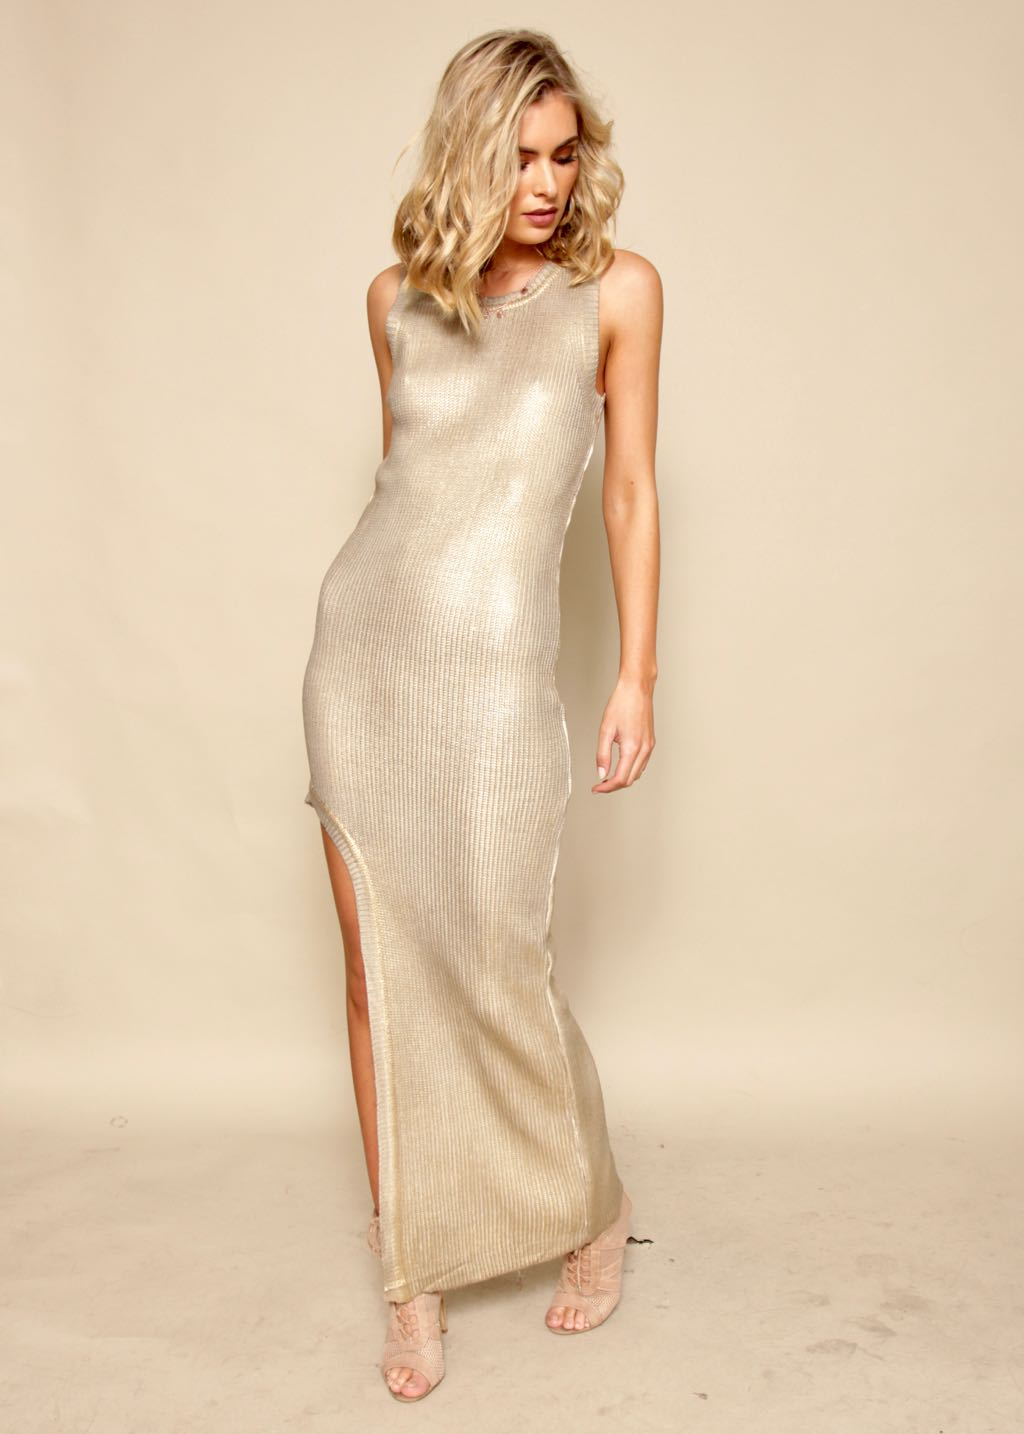 Rock With You Knit Dress - Gold